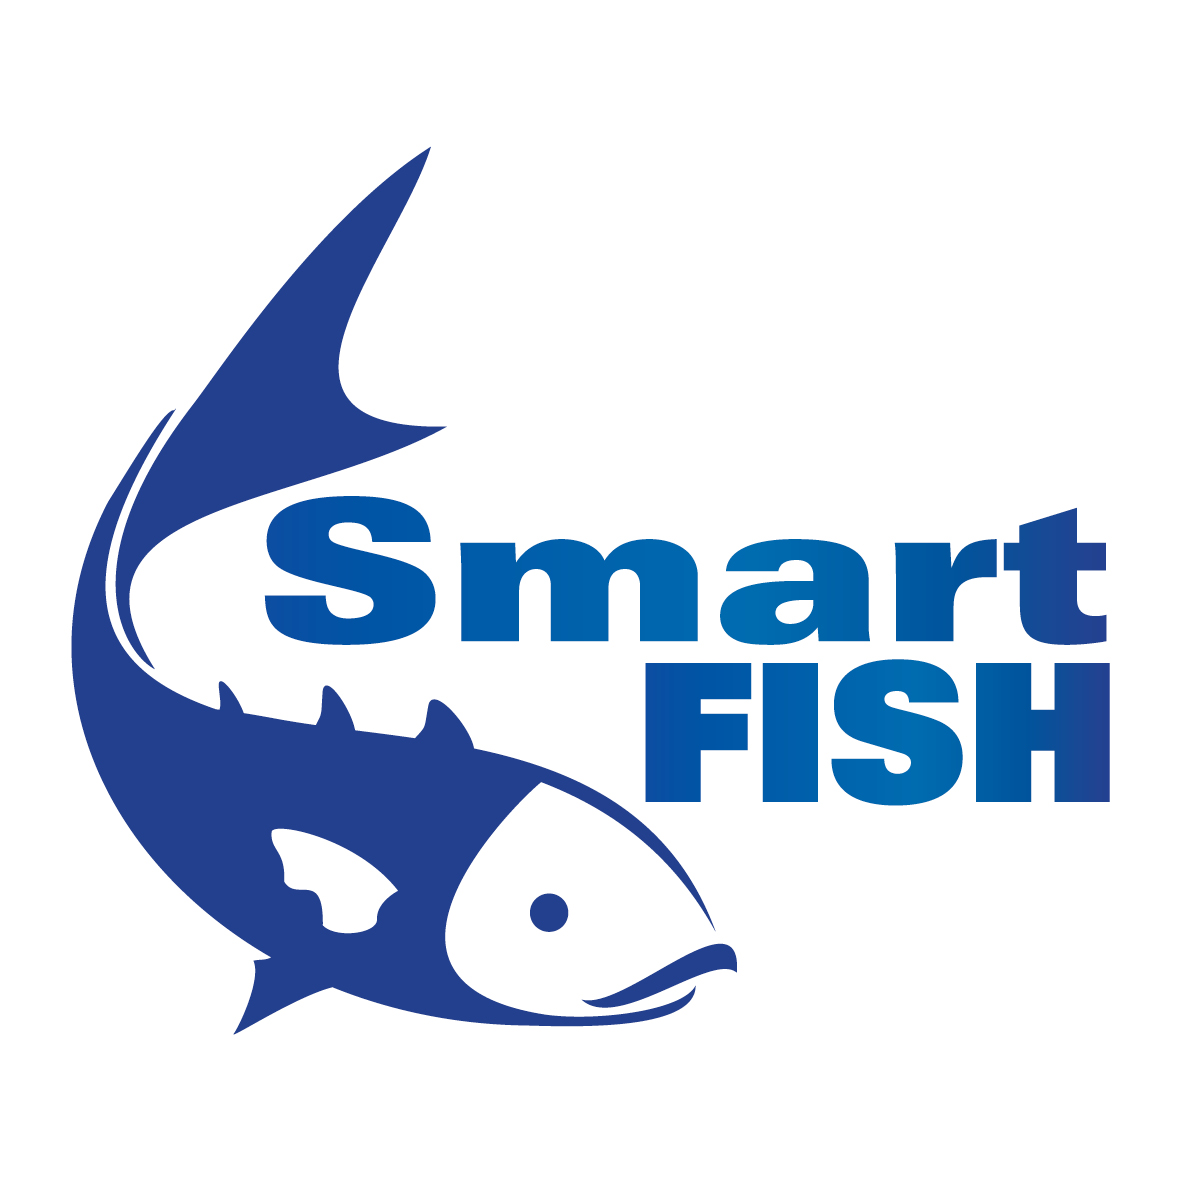 File:Smart Fish logo.jpg - Wikimedia Commons